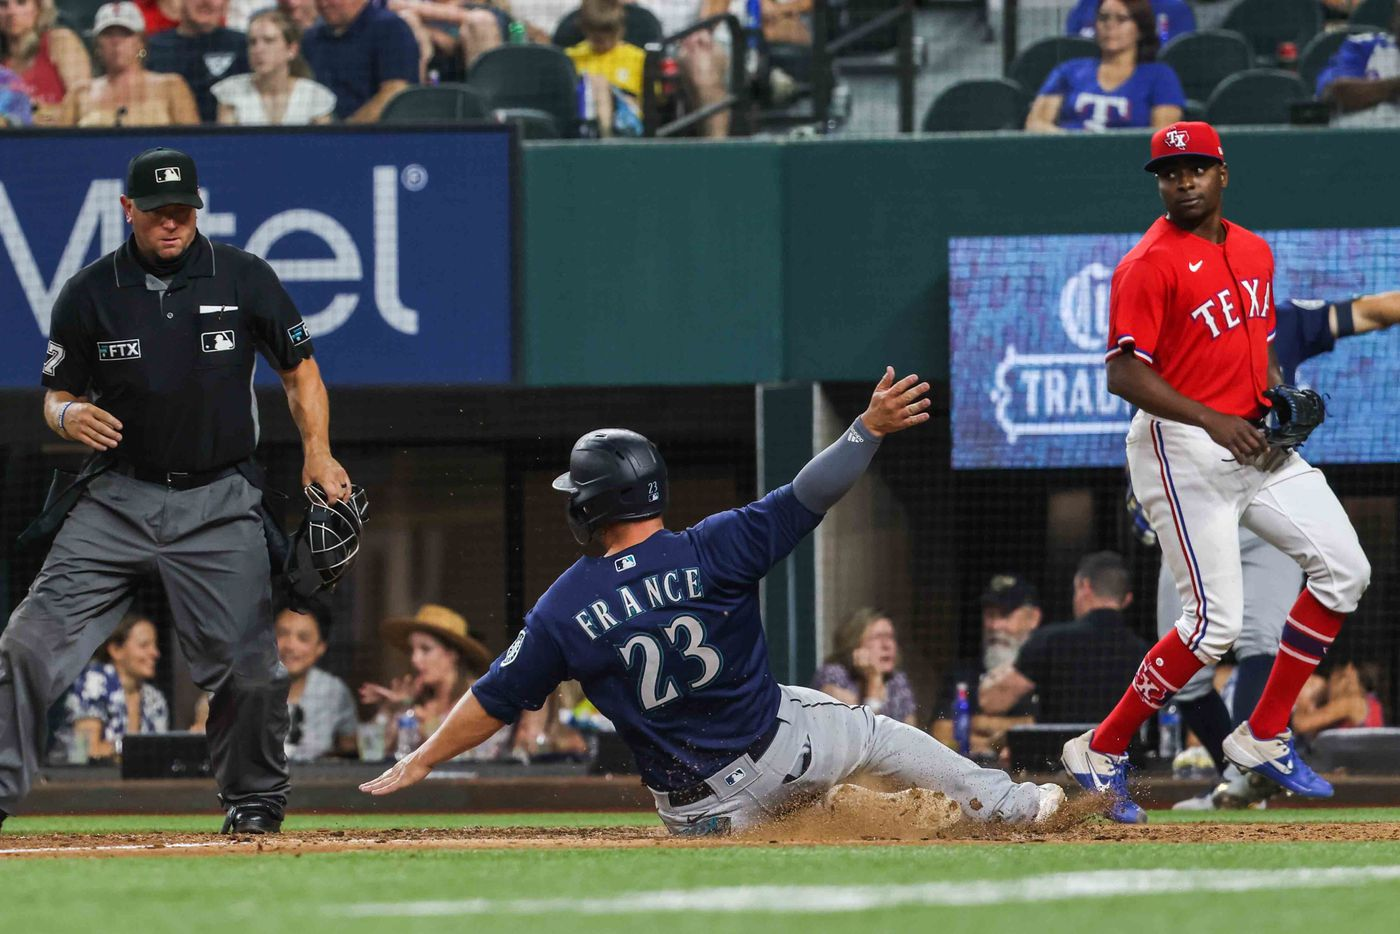 Seattle Mariners Ty France (23)slides home safely scoring  run 8 for the team against Texas Rangers in the seventh inning at Globe Life Field in Arlington, Texas, Friday, July 30, 2021. (Lola Gomez/The Dallas Morning News)